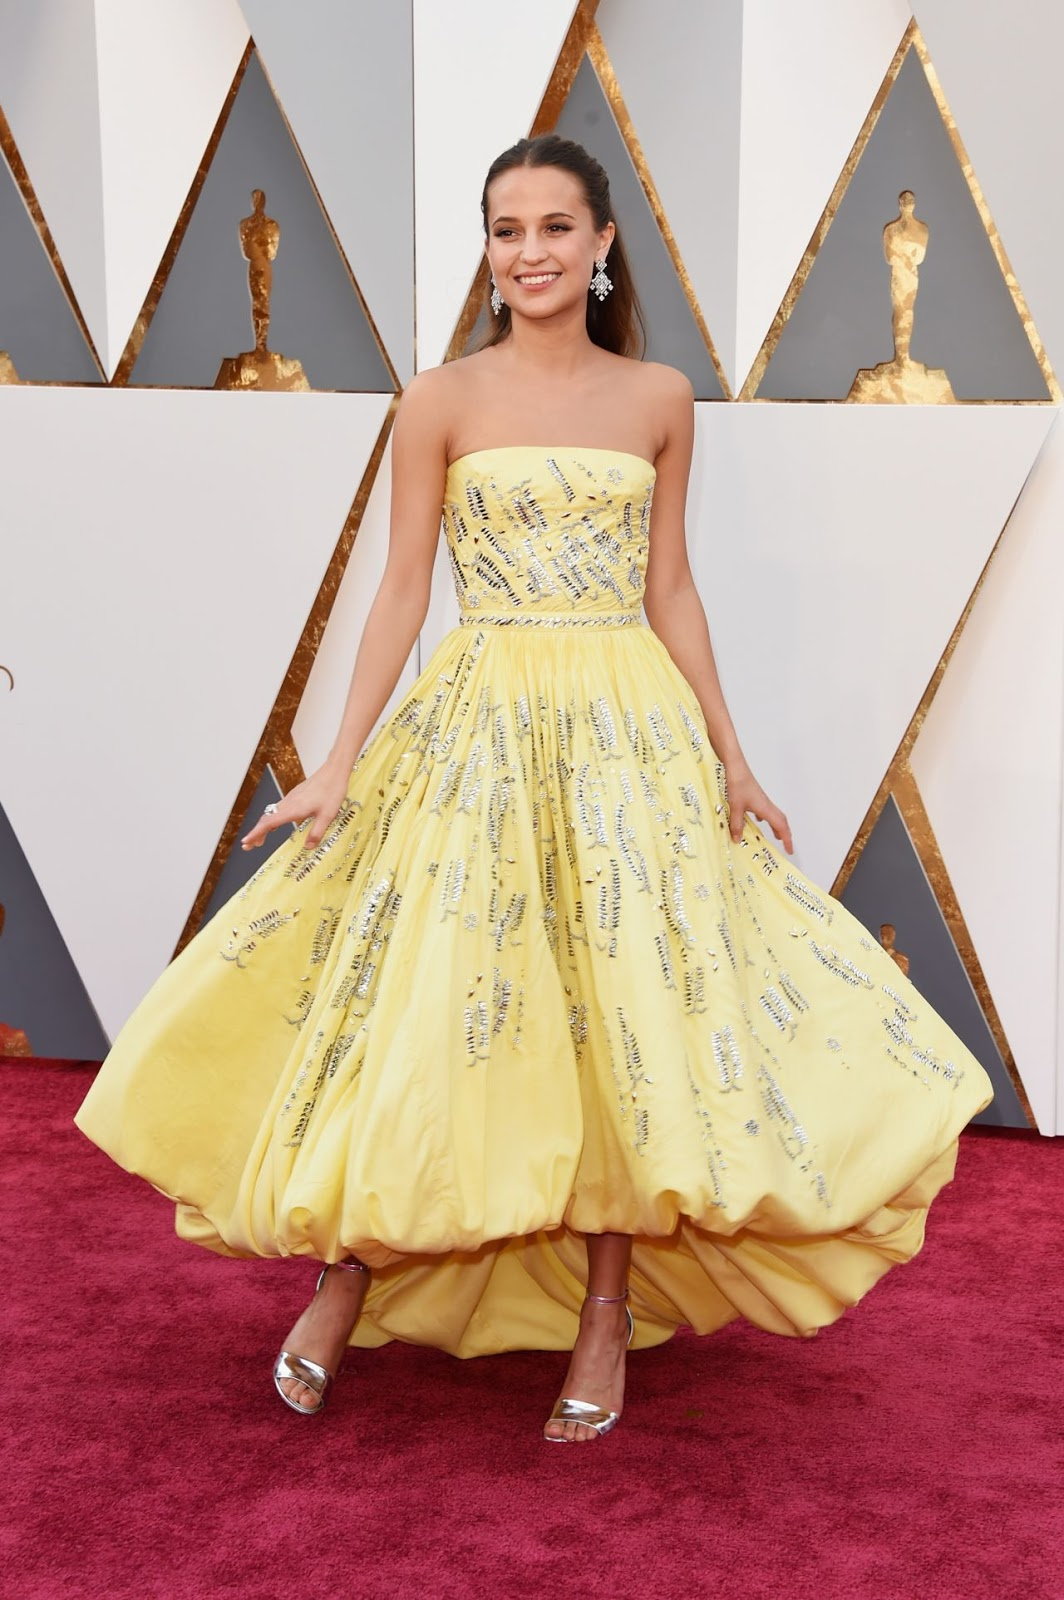 Alicia Vikander brings sunshine to the Oscars 2016